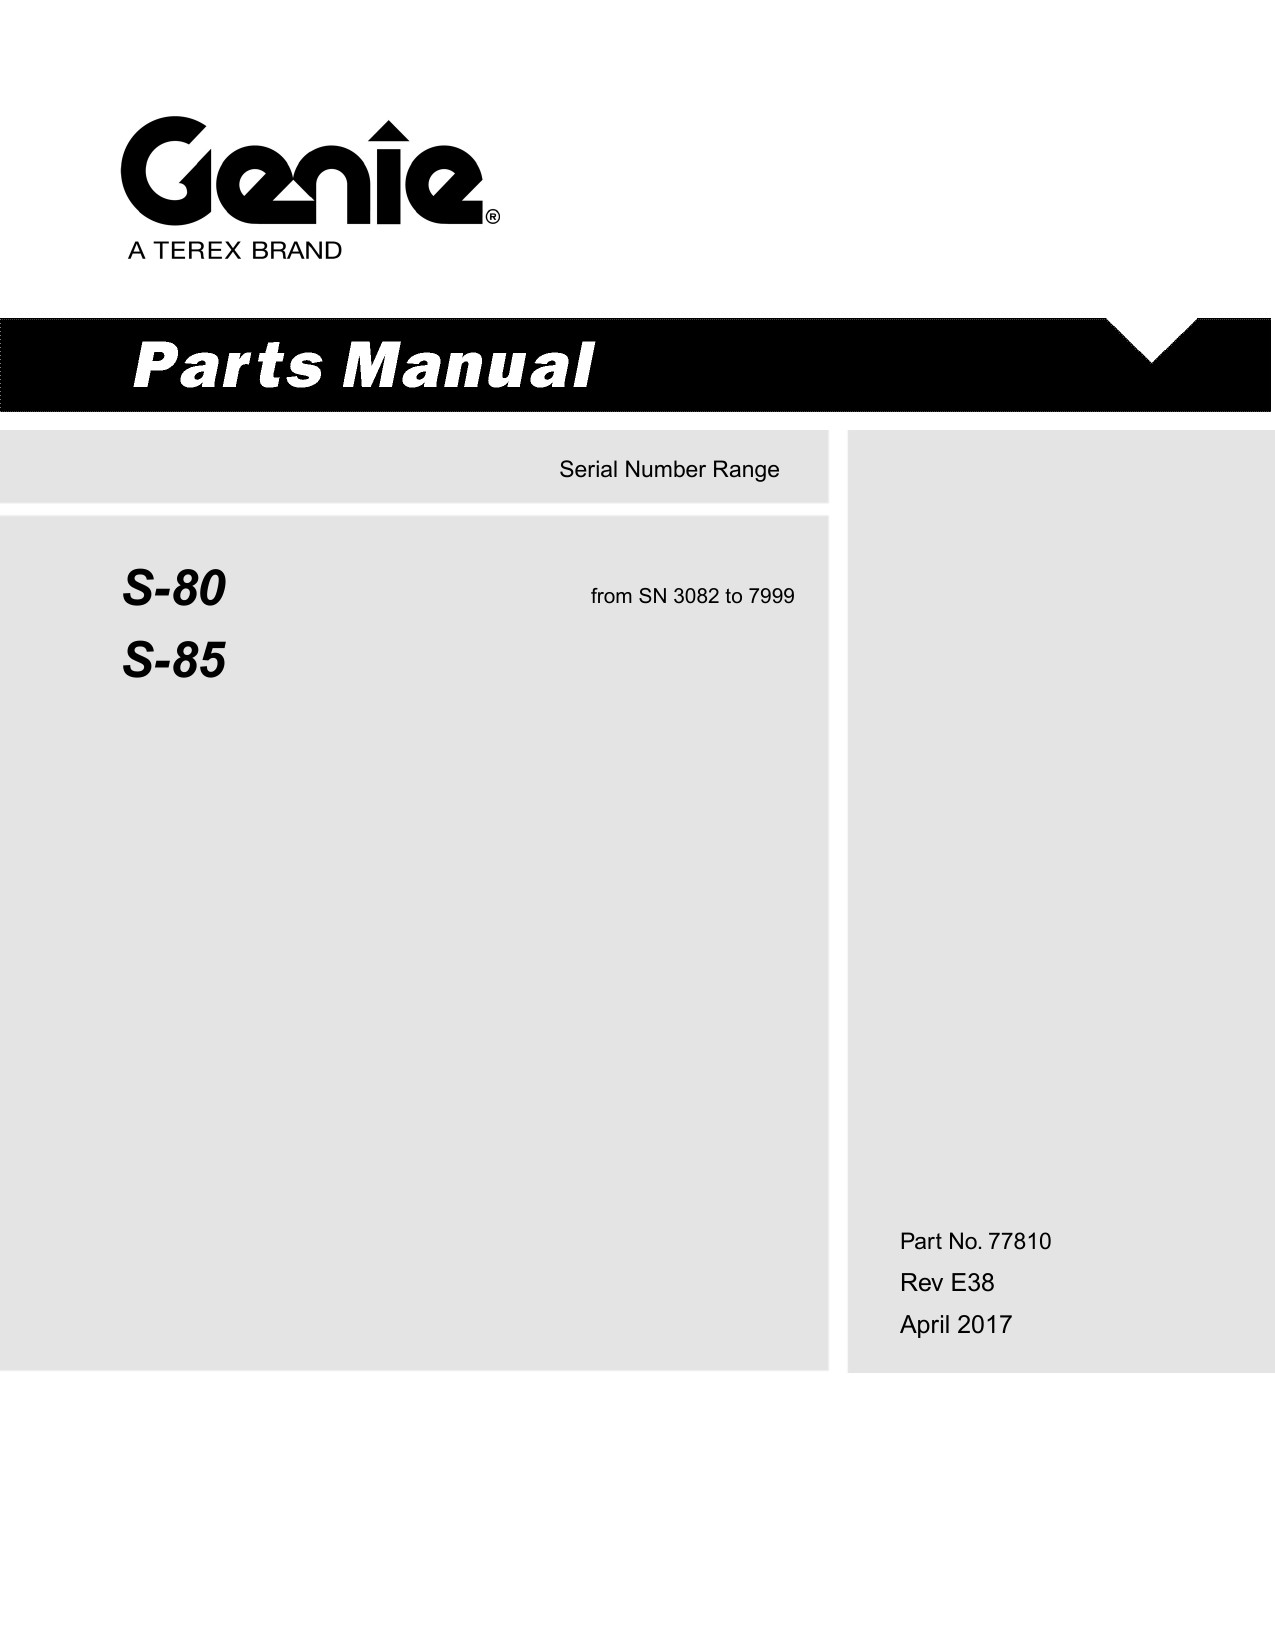 Deutz Engine Parts Diagram Genia S 80 Boomlift Parts Manual Of Deutz Engine Parts Diagram Deutz Alternator Wiring Diagram